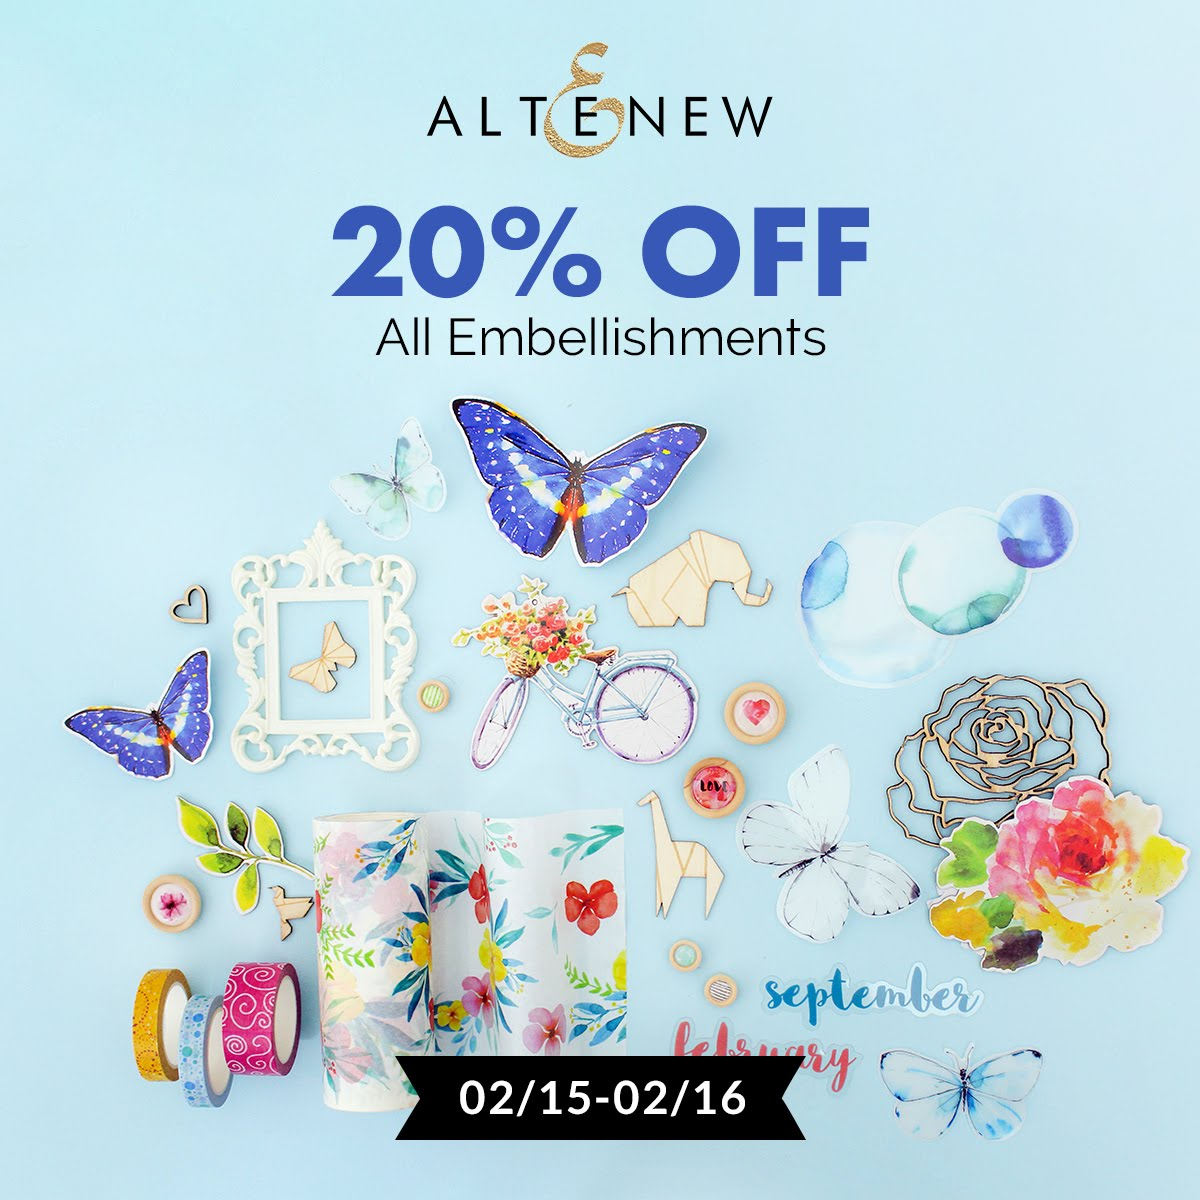 20% off Altenew Embellishments